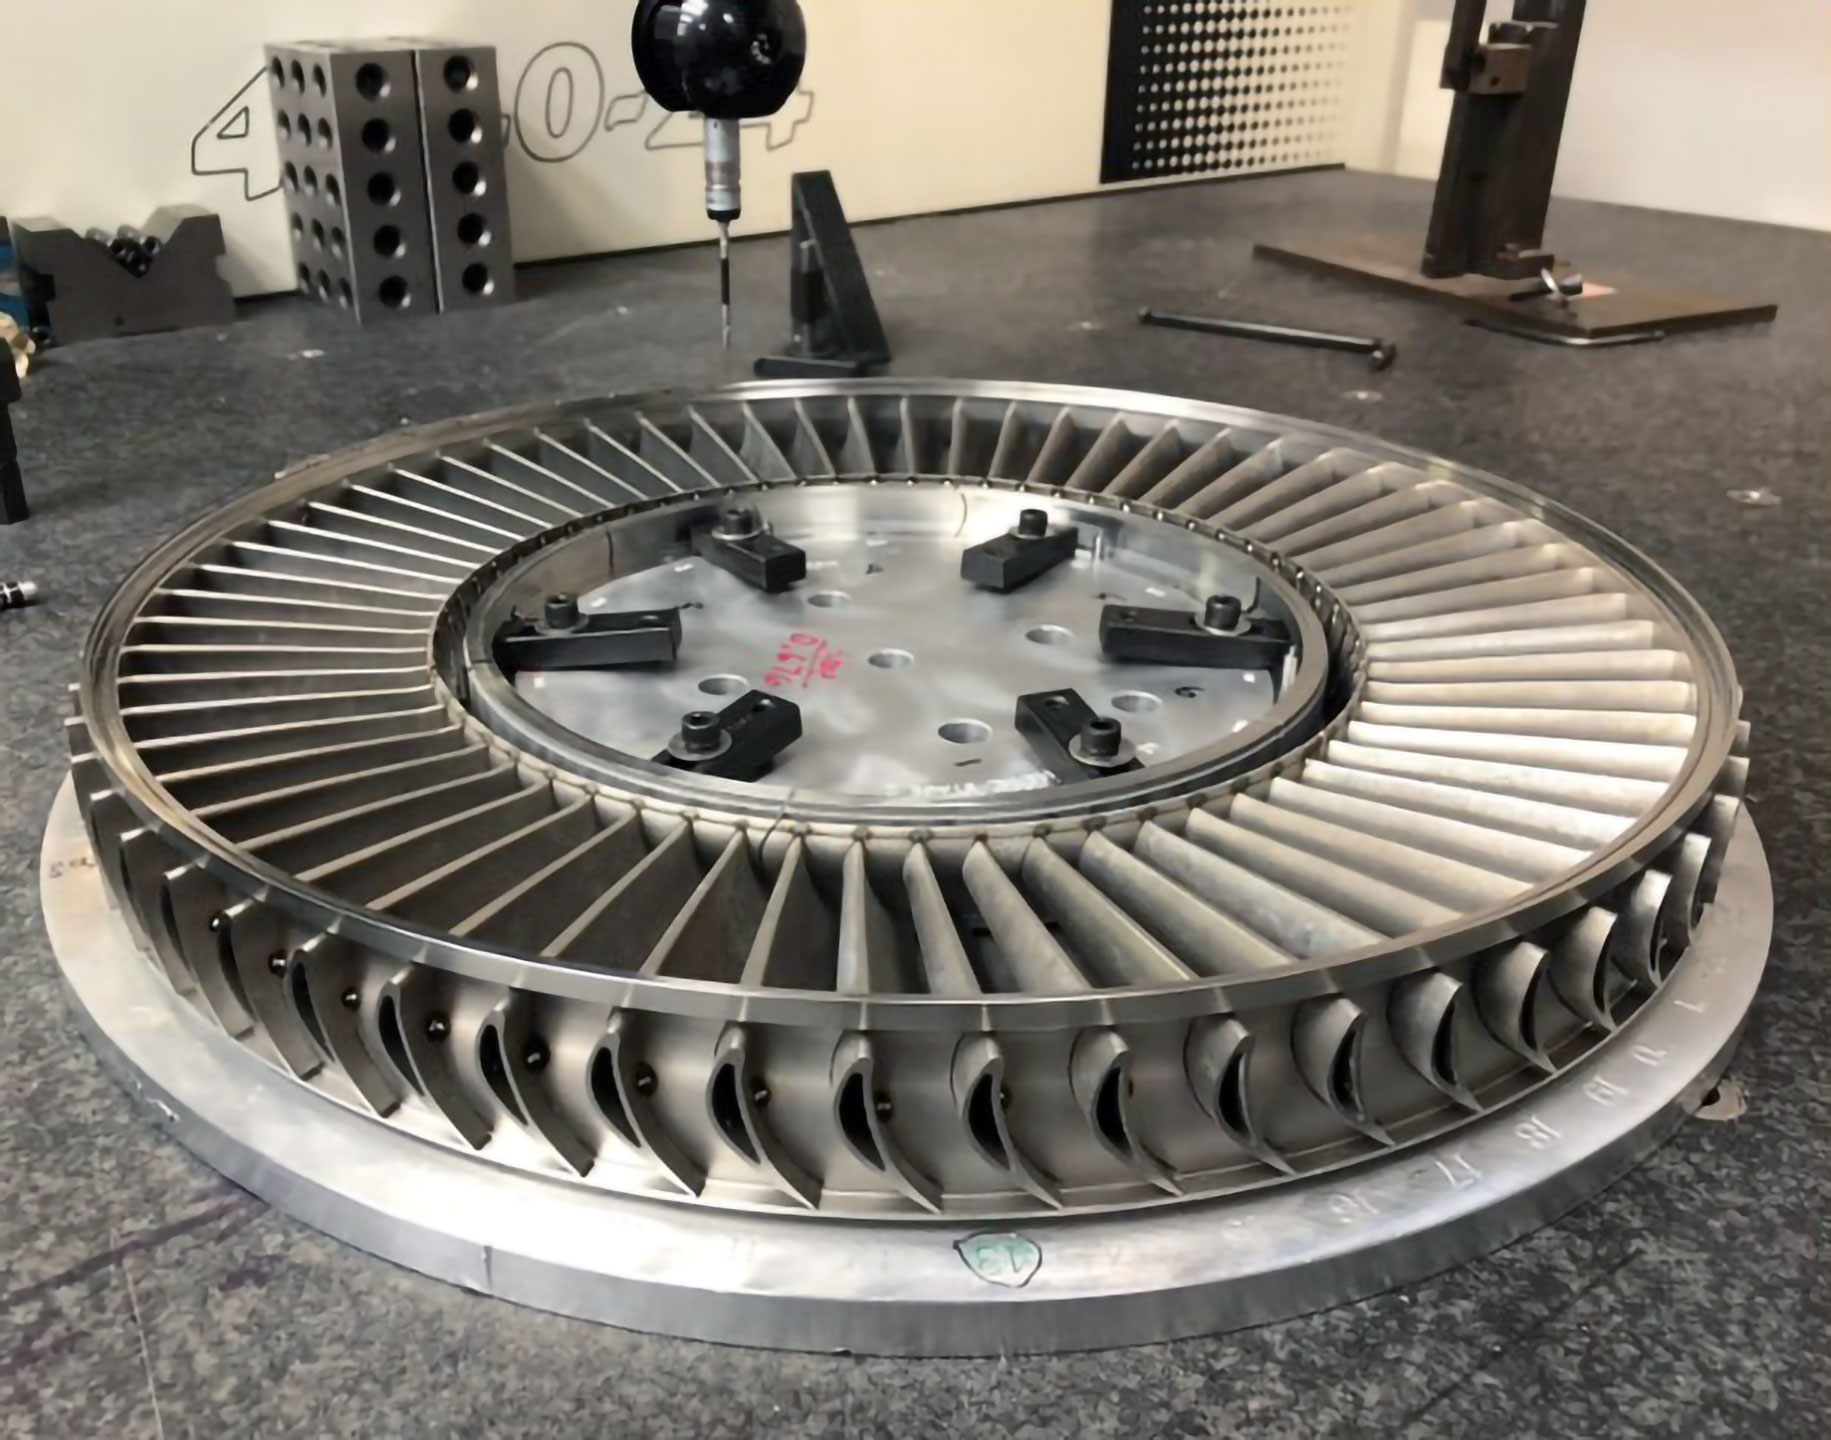 Inspecting-a-Turbine-Nozzle-Assembly